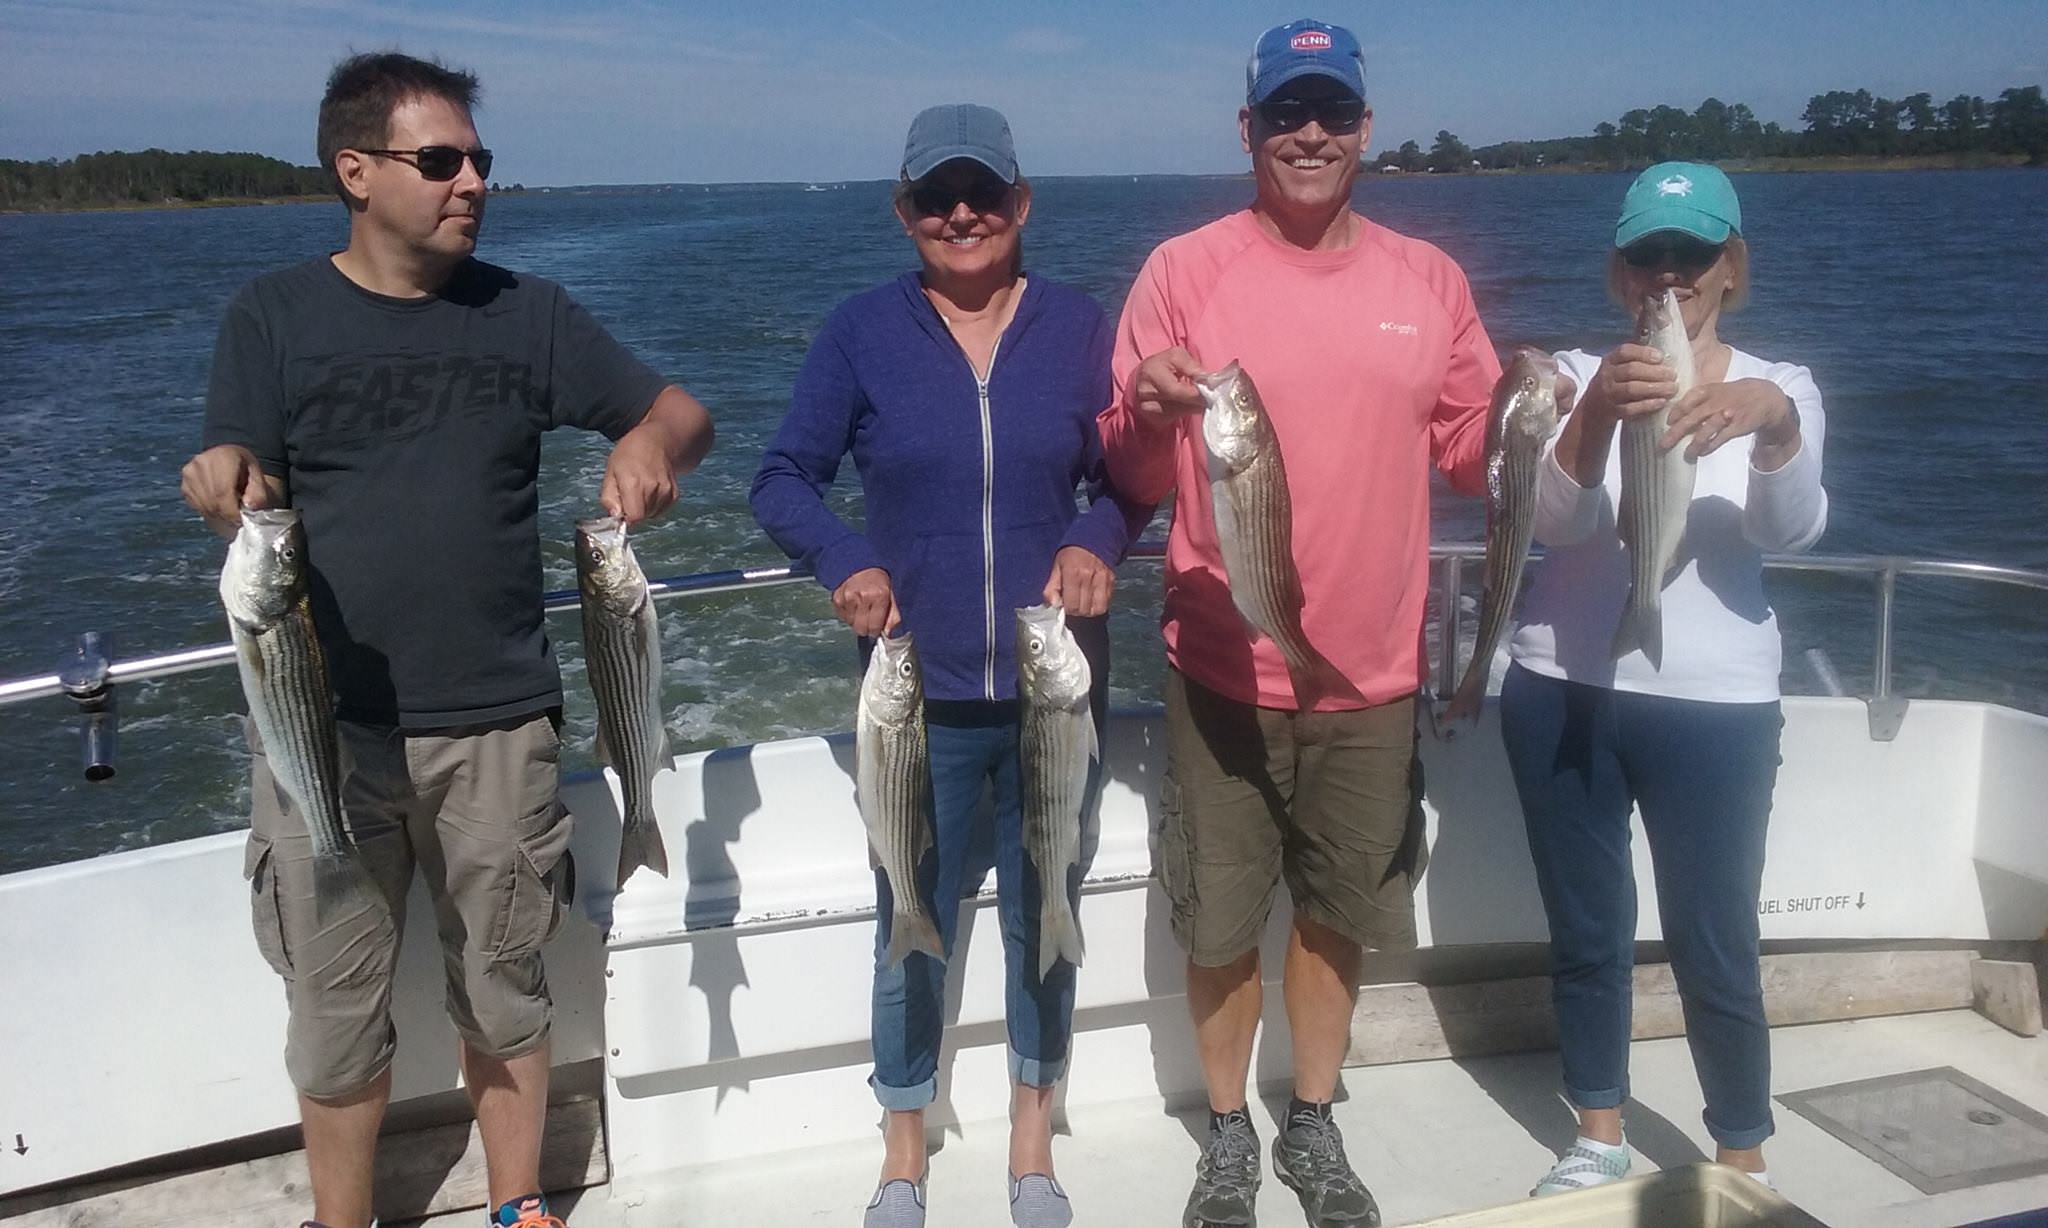 Chesapeake Bay Charter Fishing For Chesapeake Bay Rockfish, Maryland Striped Bass!